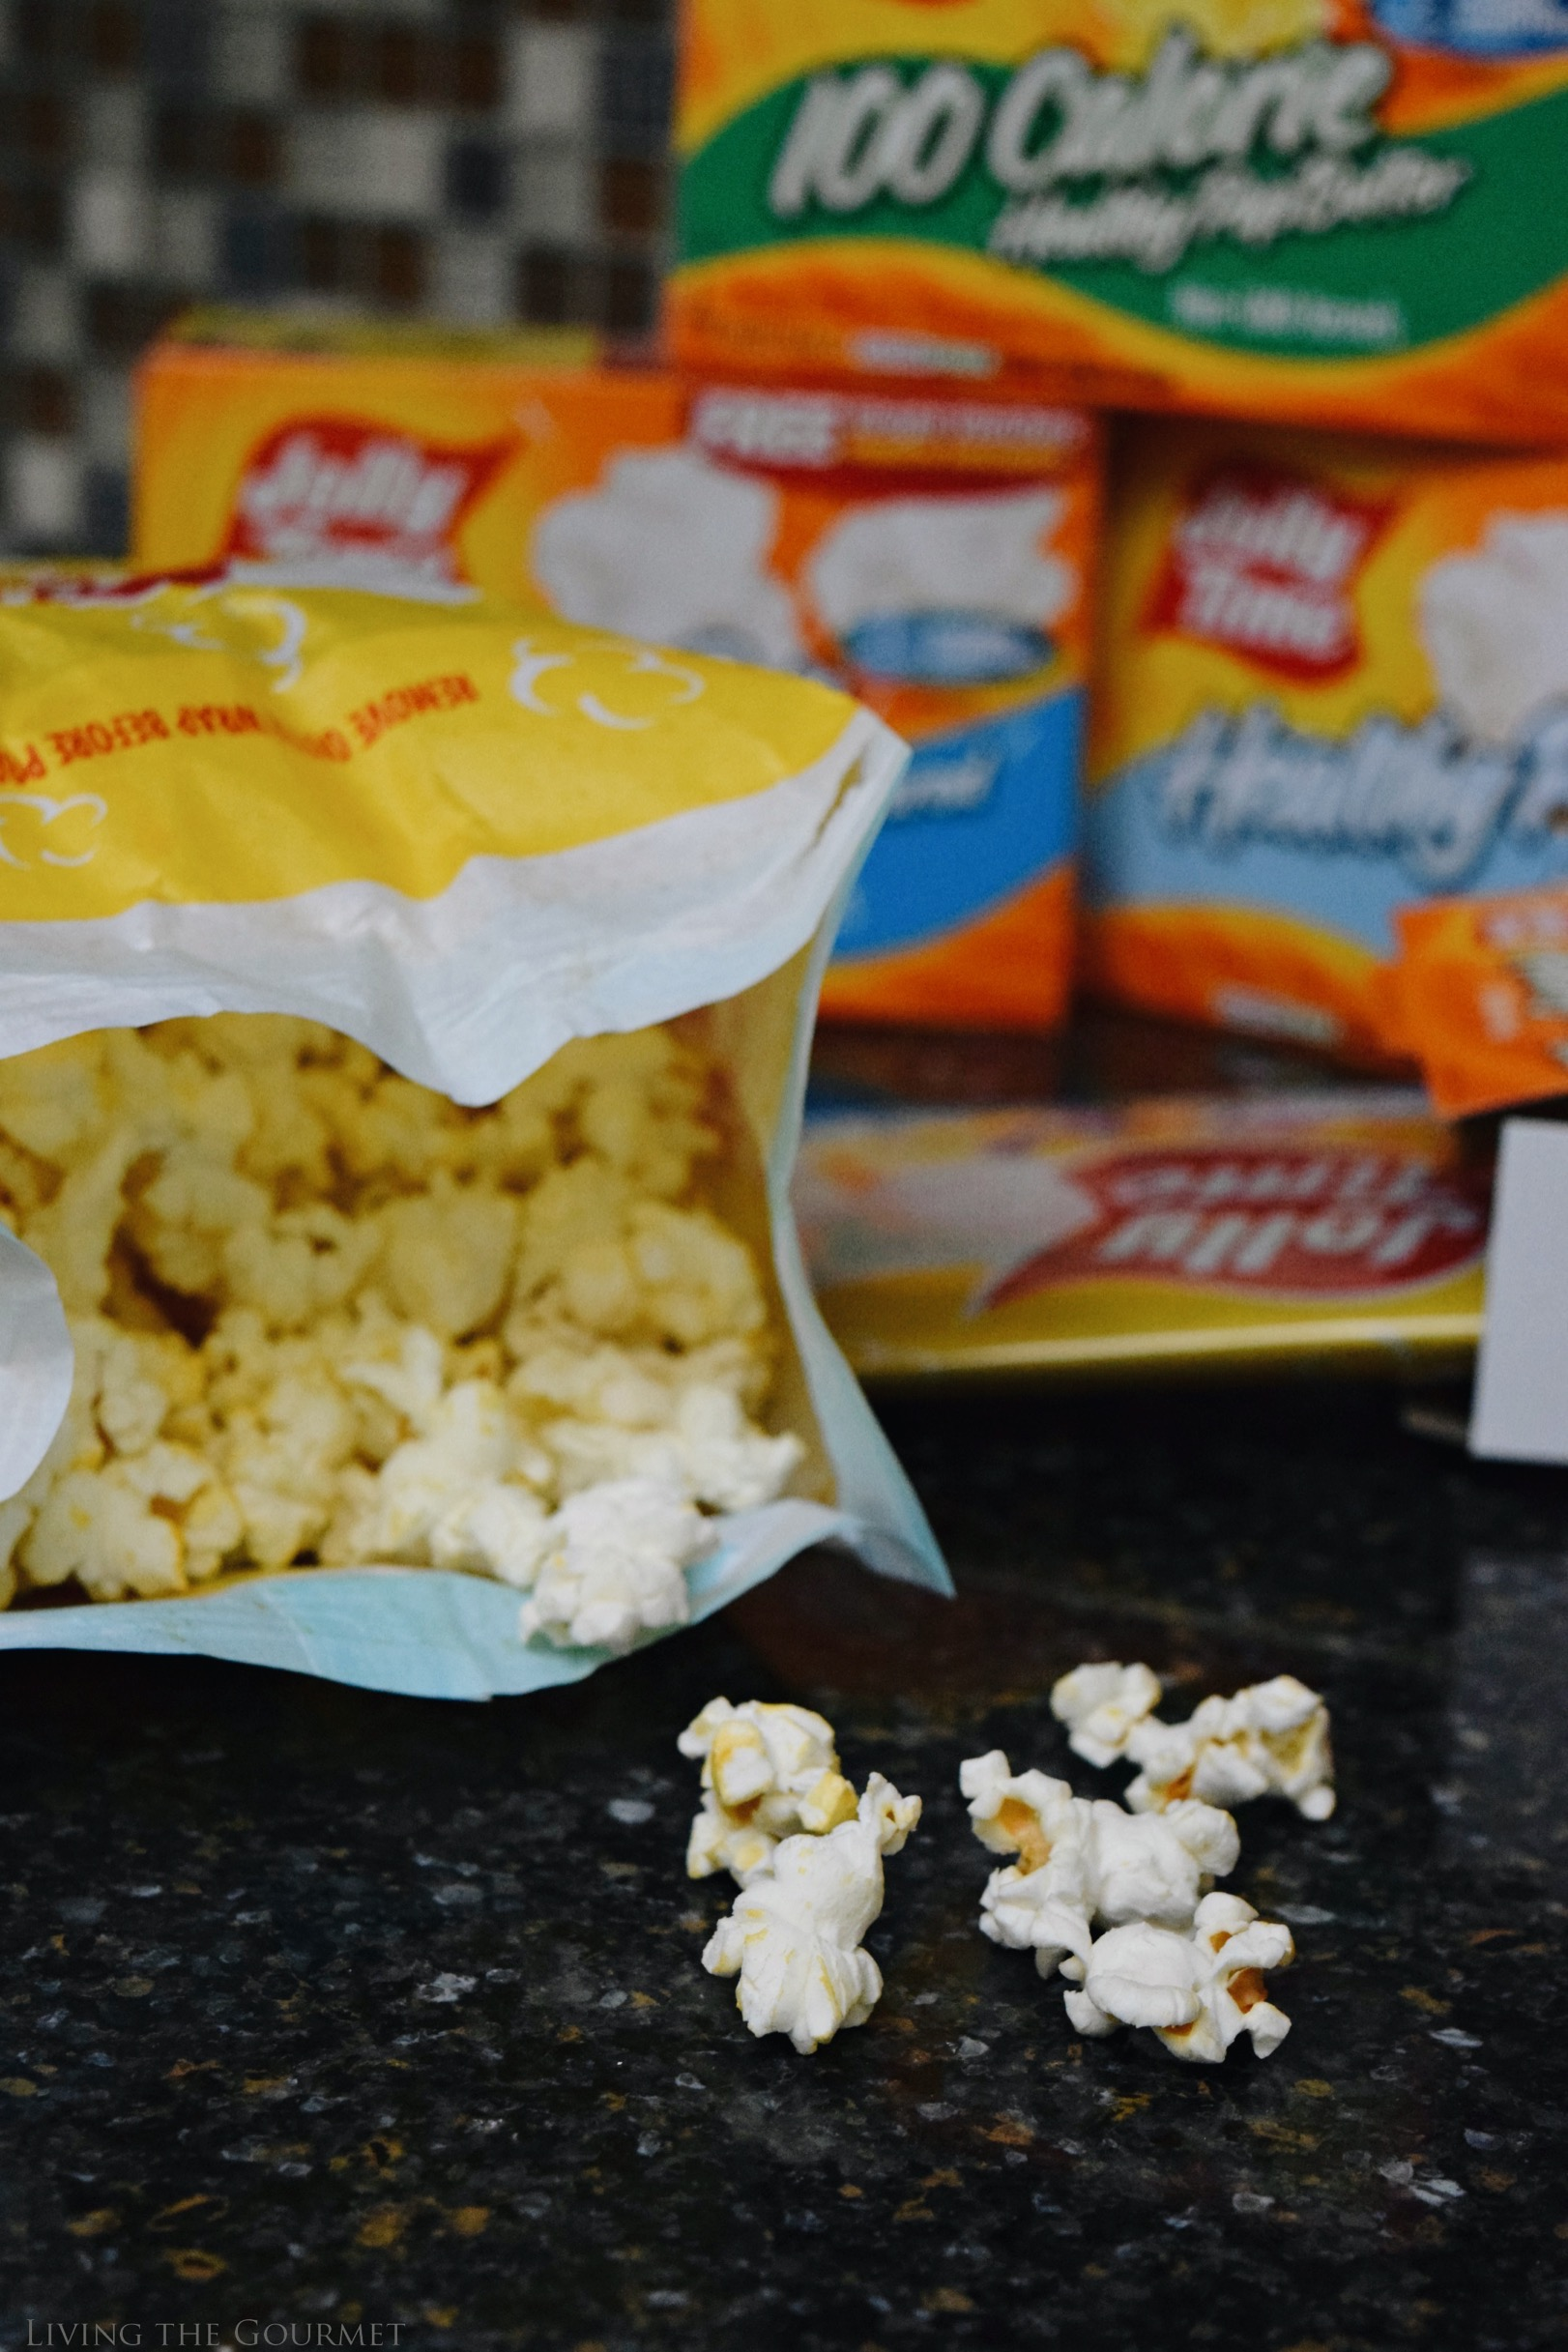 Living the Gourmet: Healthy Snacking with JOLLY TIME Pop Corn | #HPChallenge #HaveaJOLLYTIME #FitFluential #ad